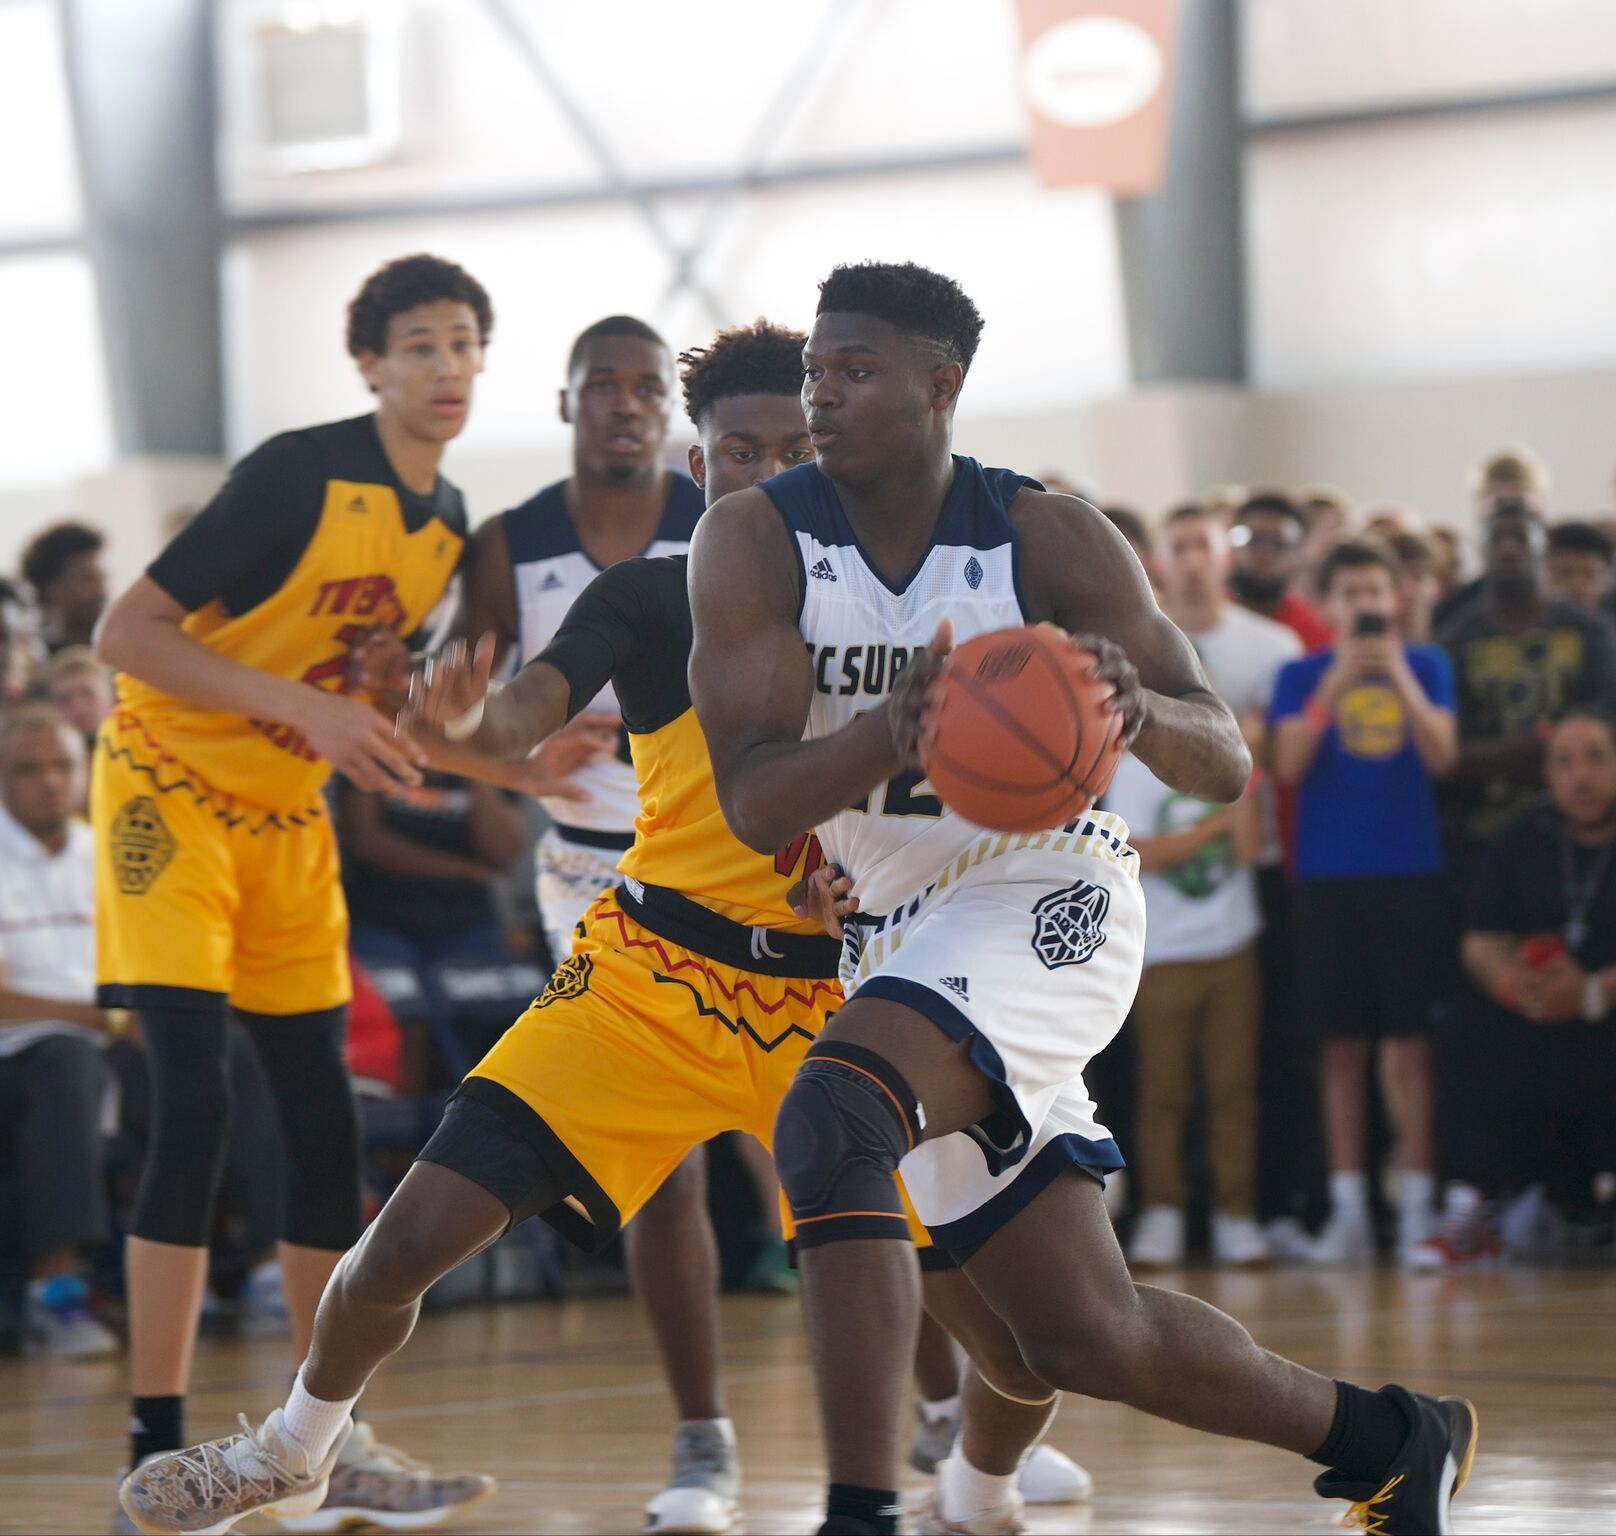 Masten shines on national stage at adidas Gauntlet | Mile High Sports